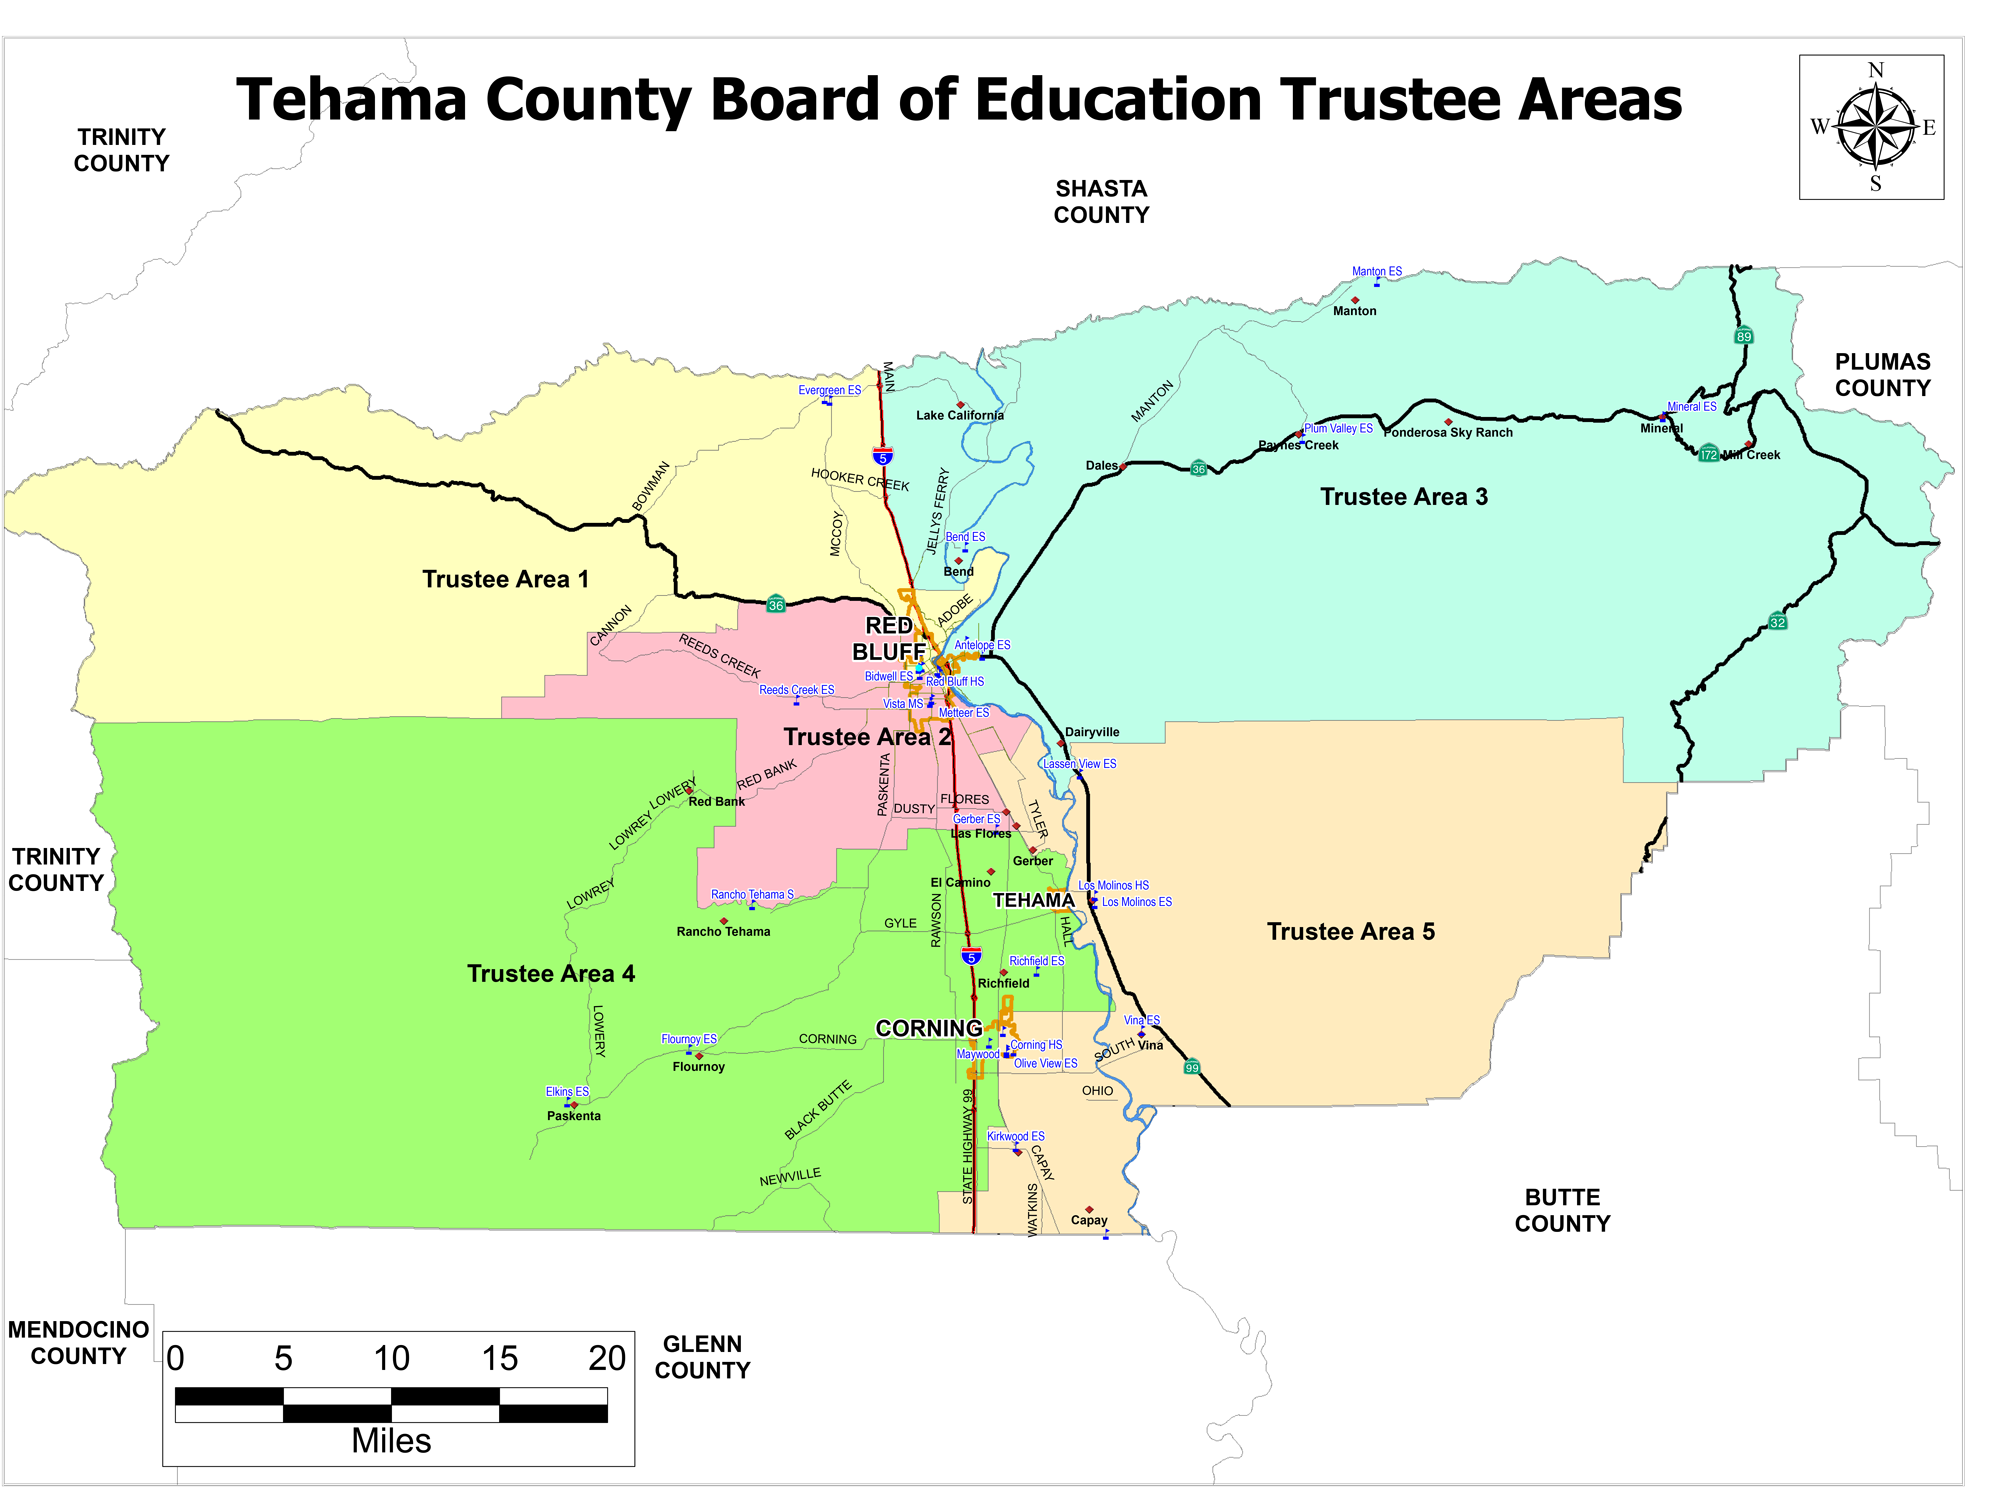 map of tehama county and the trustee areas